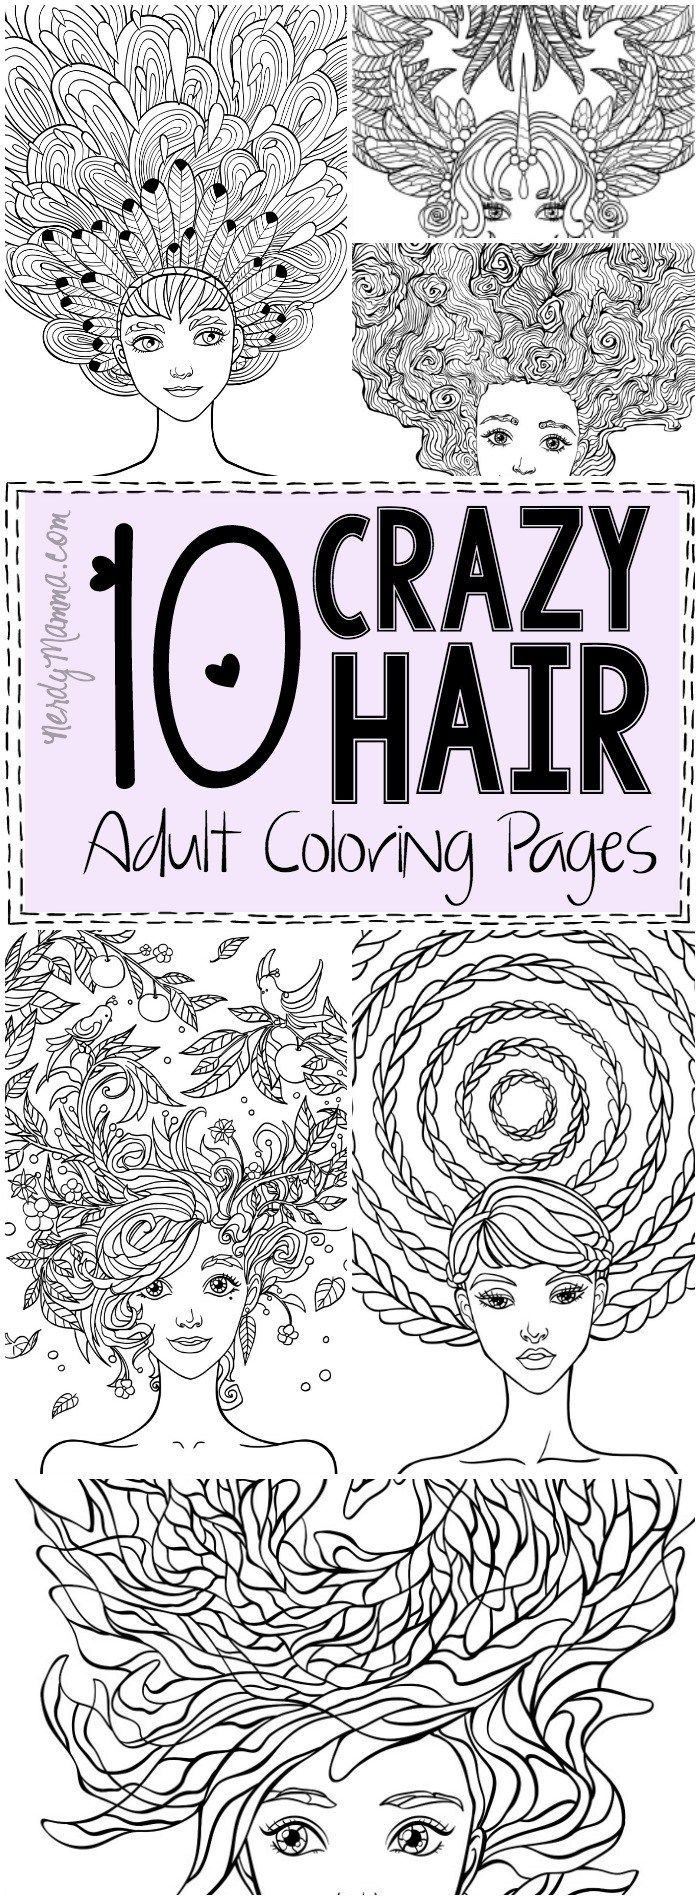 73 best Coloring Pages images on Pinterest | Print coloring pages ...